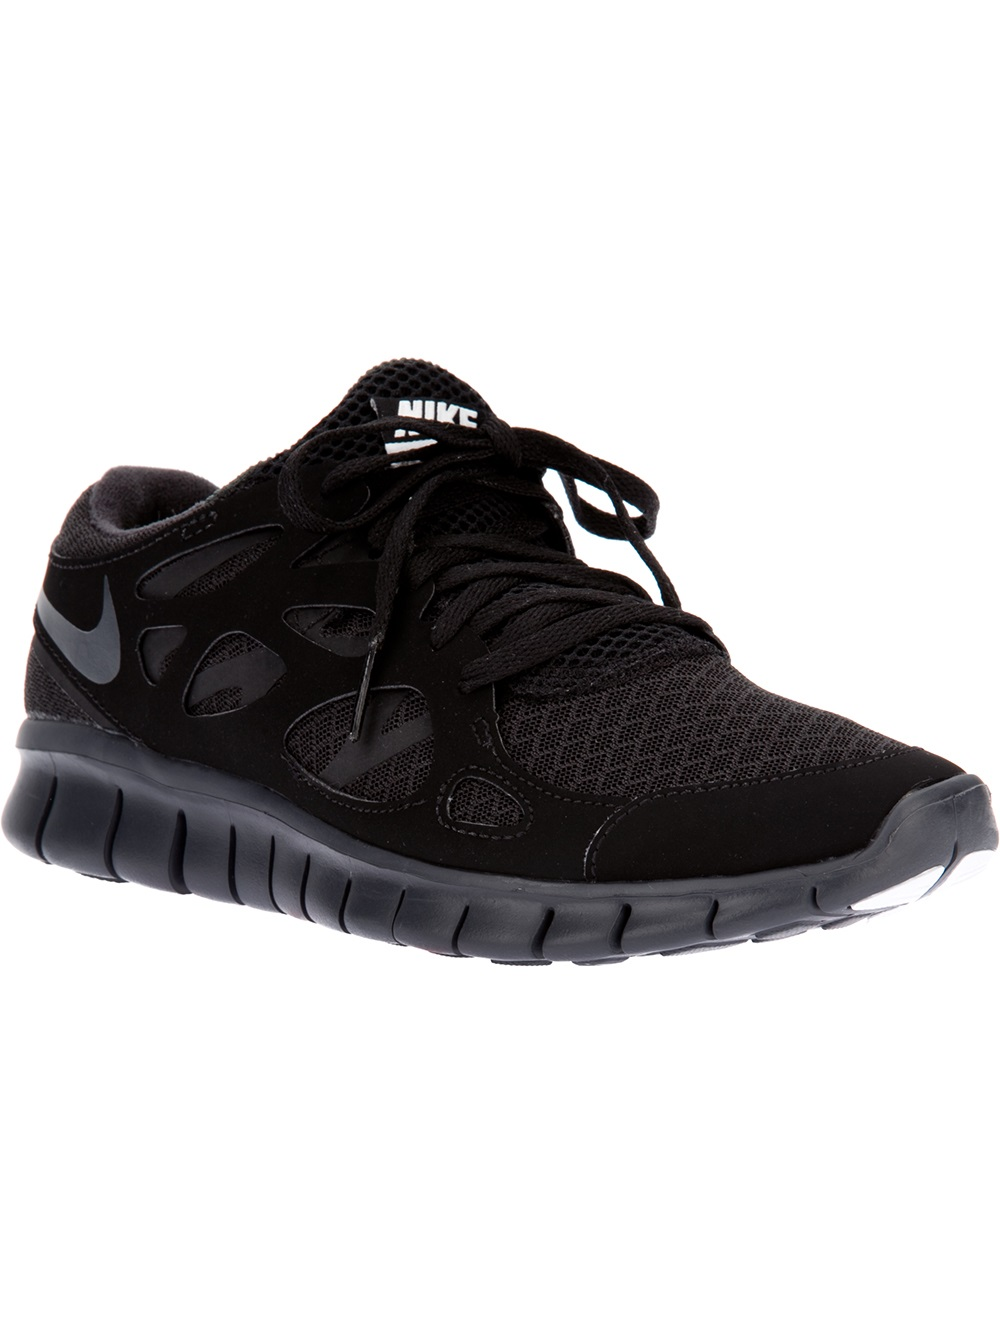 Nike Running Trainer Nike Free Run 2 Nsw Trainer In Black For Men Lyst